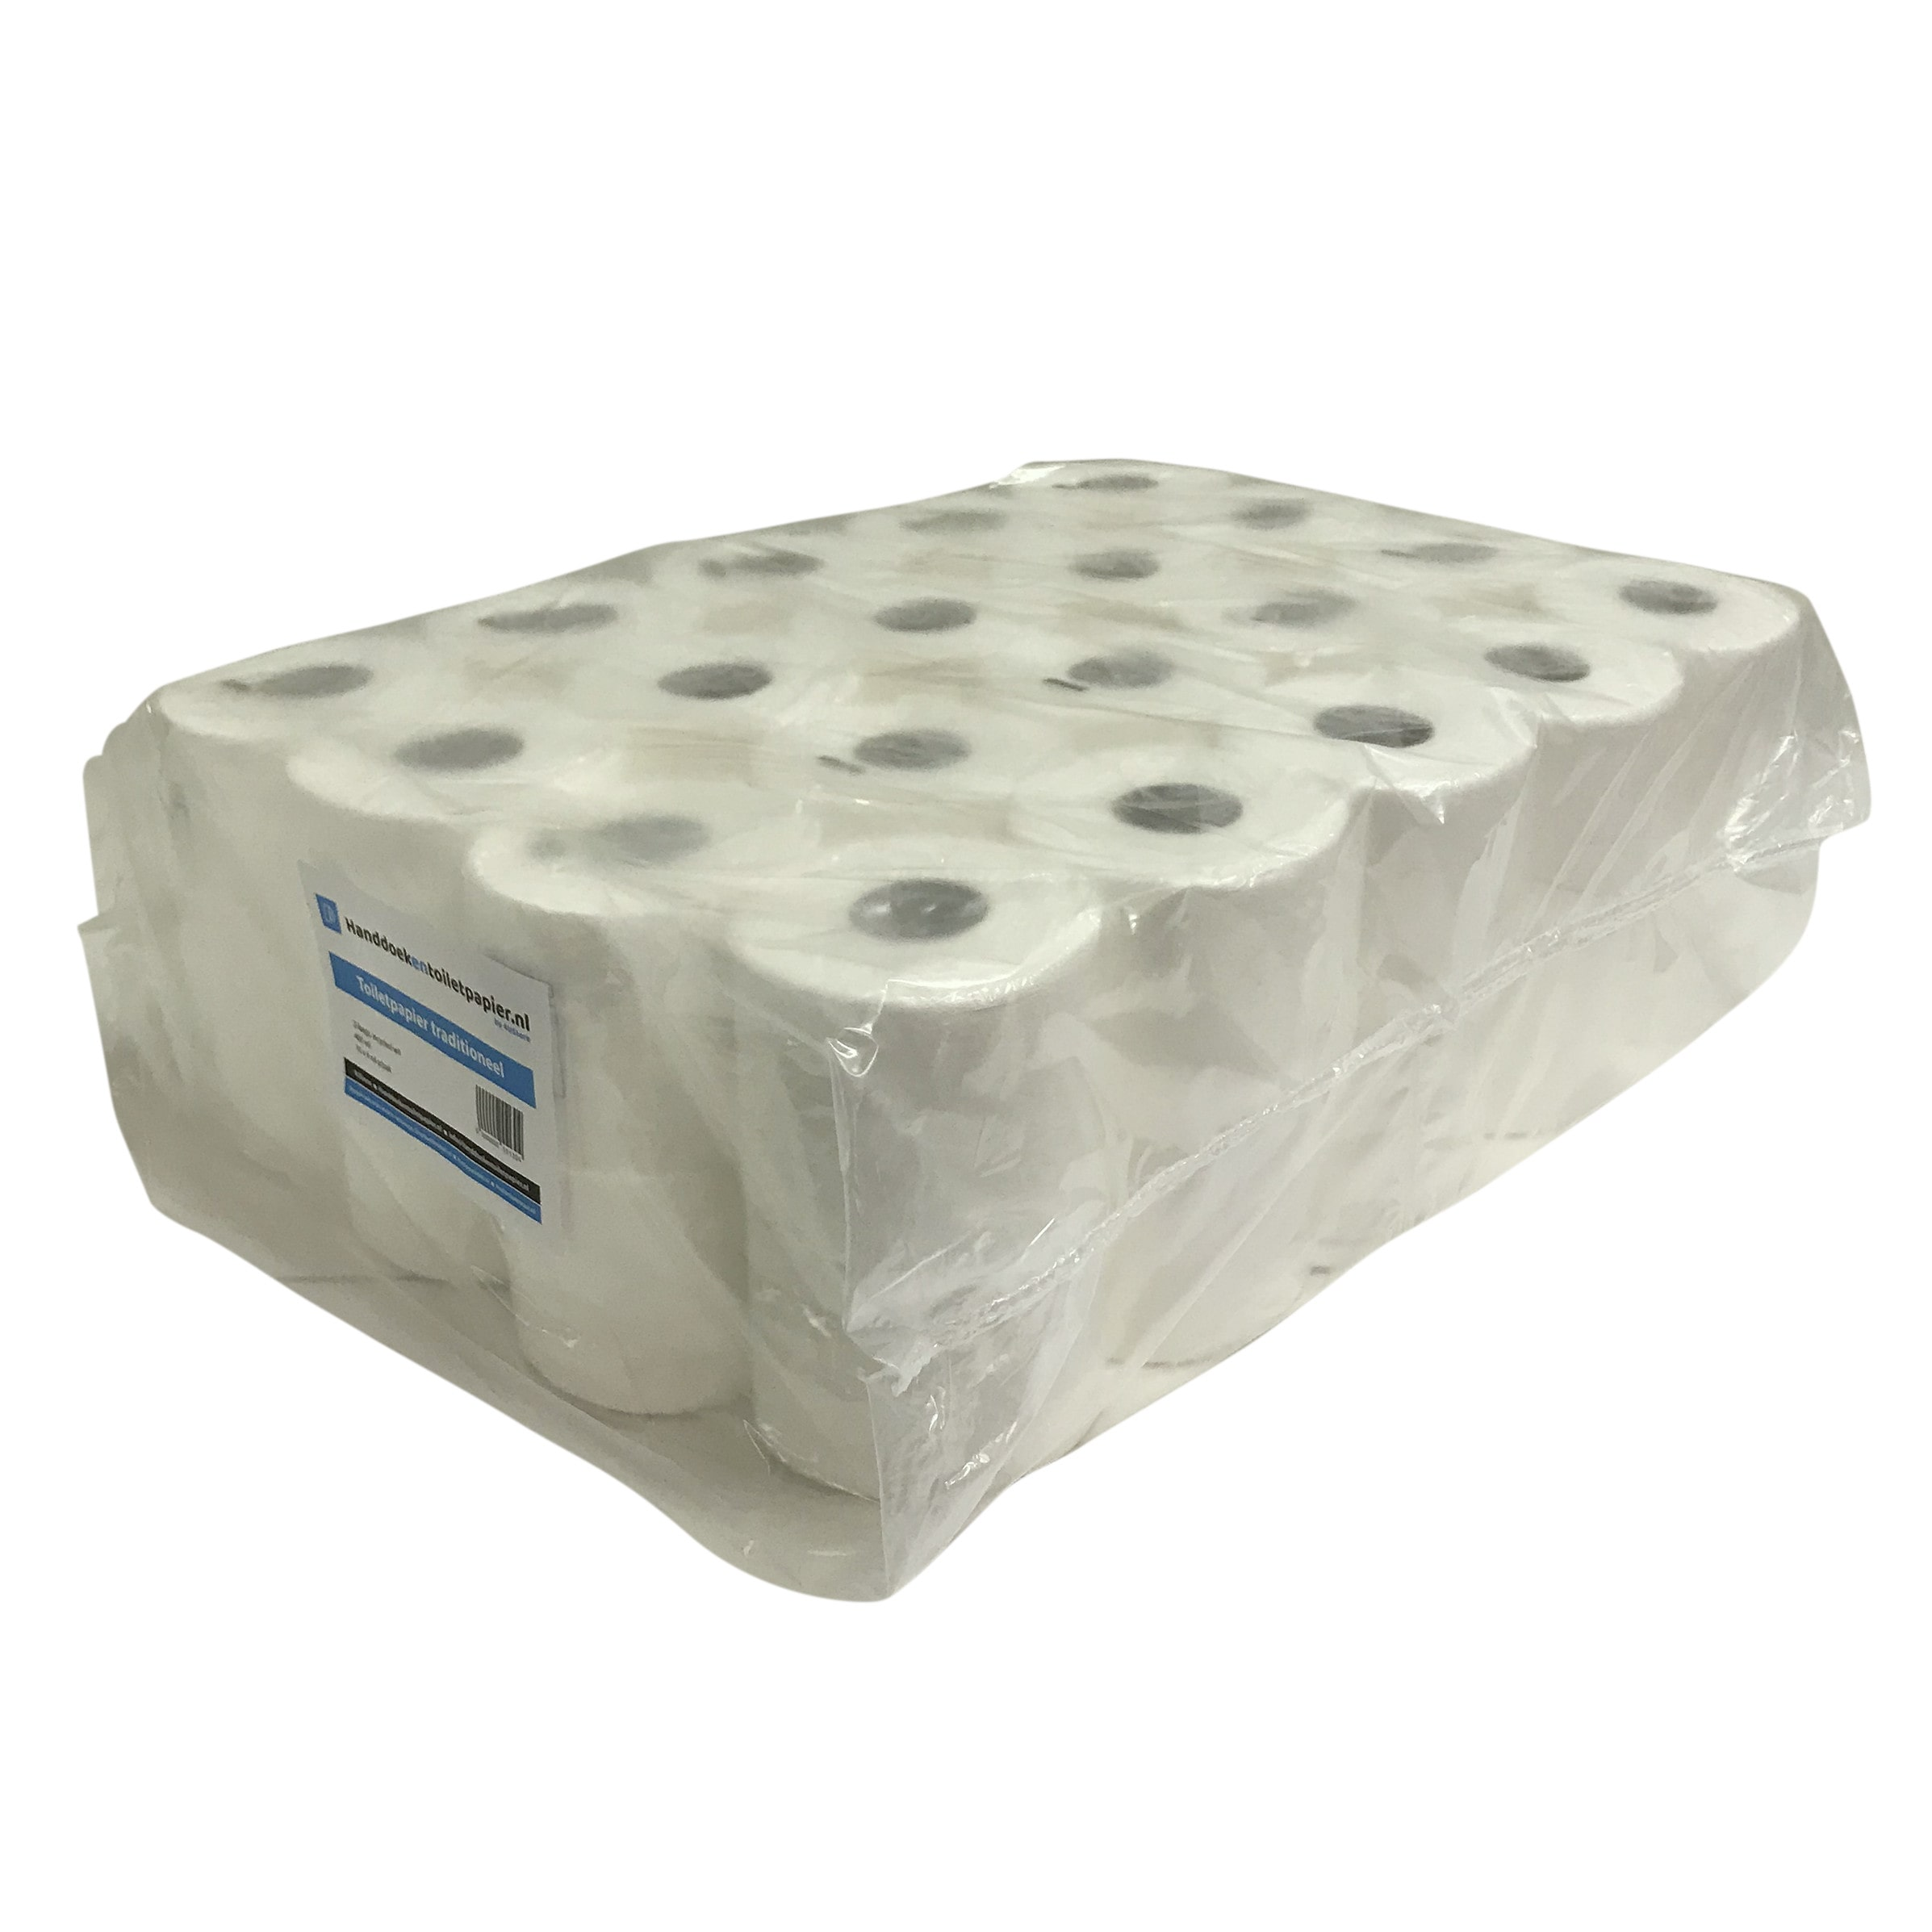 4UStore toiletpapier recycled tissue 2-laags